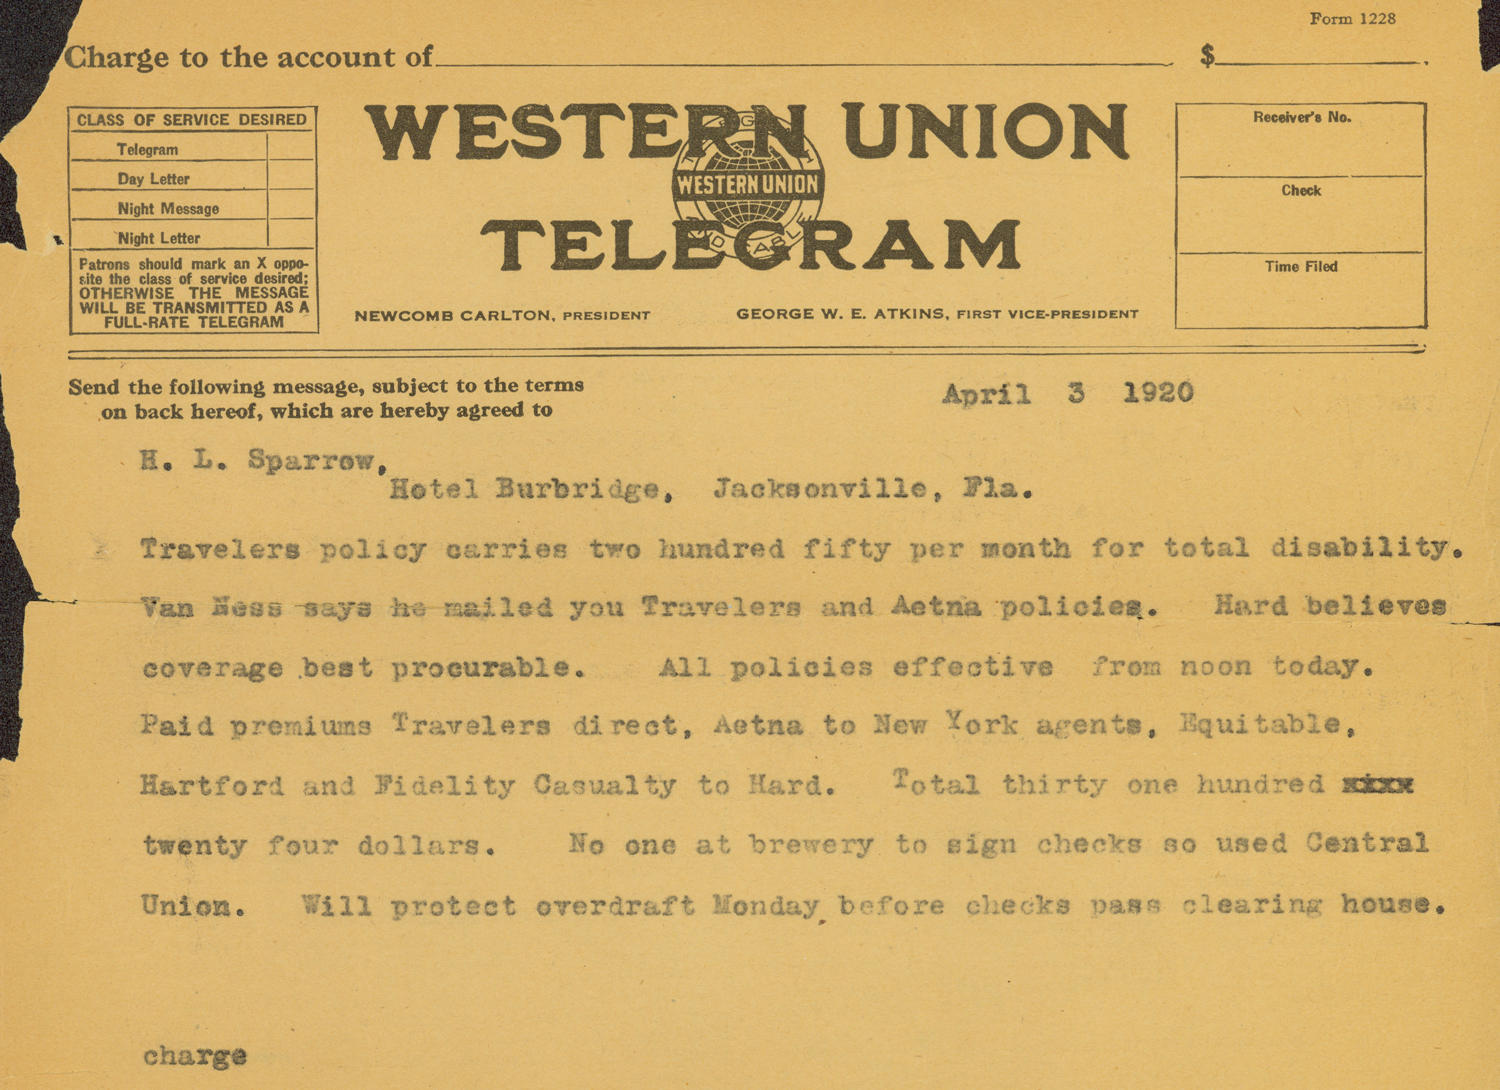 Western Union telegram from April 3, 1920 outlining Babe Ruth's insurance policies. (National Baseball Hall of Fame Library)